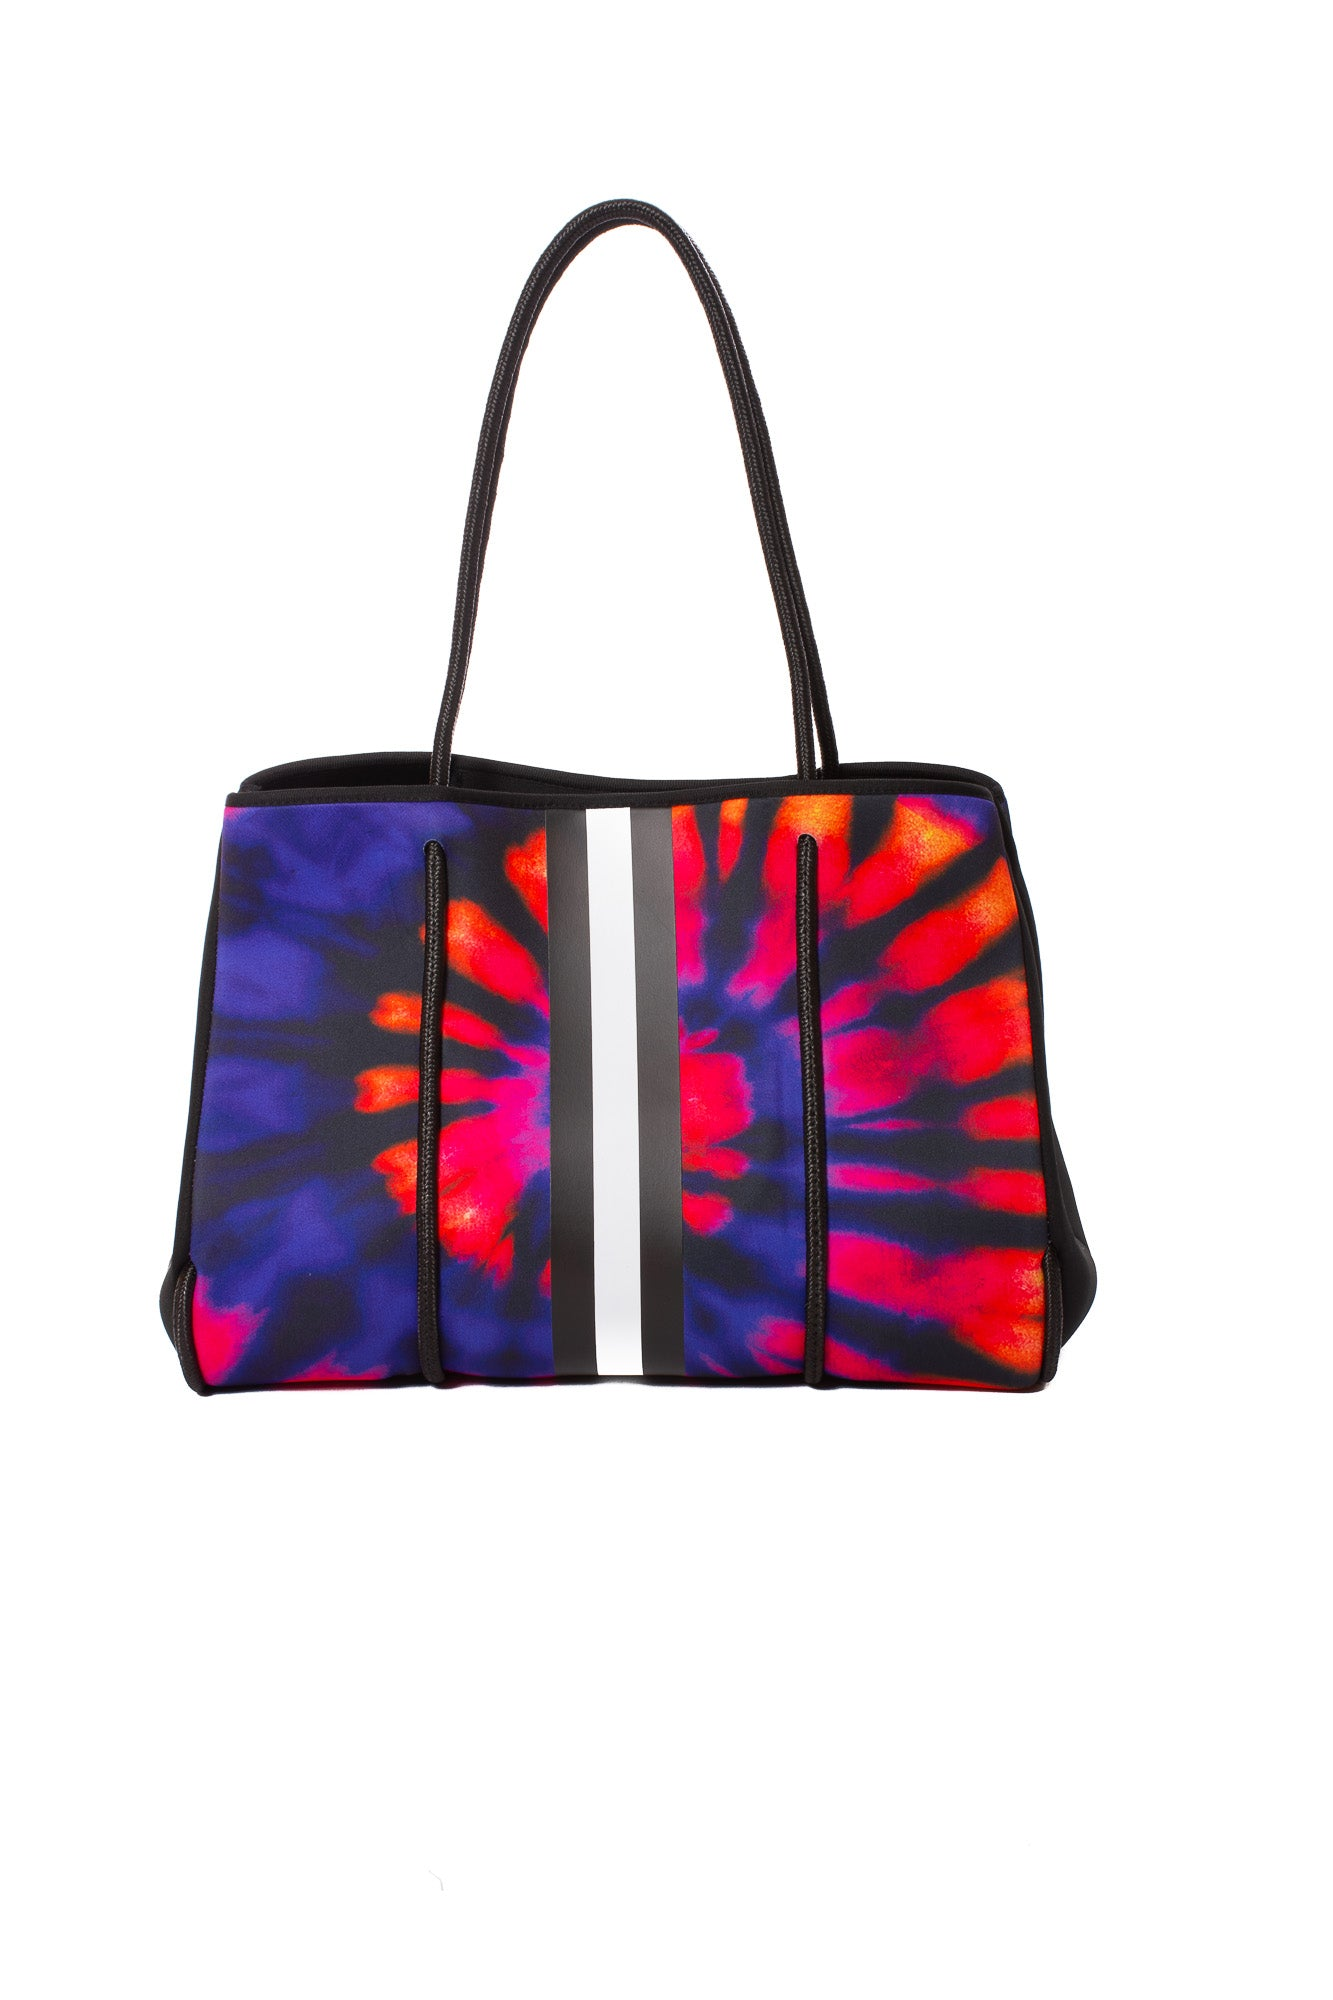 Haute Shore - Dreamer Neoprene Tote Bag w/Zipper Wristlet Inside (Greyson, Blue & Red Tie-dye w/Black & White Stripe)